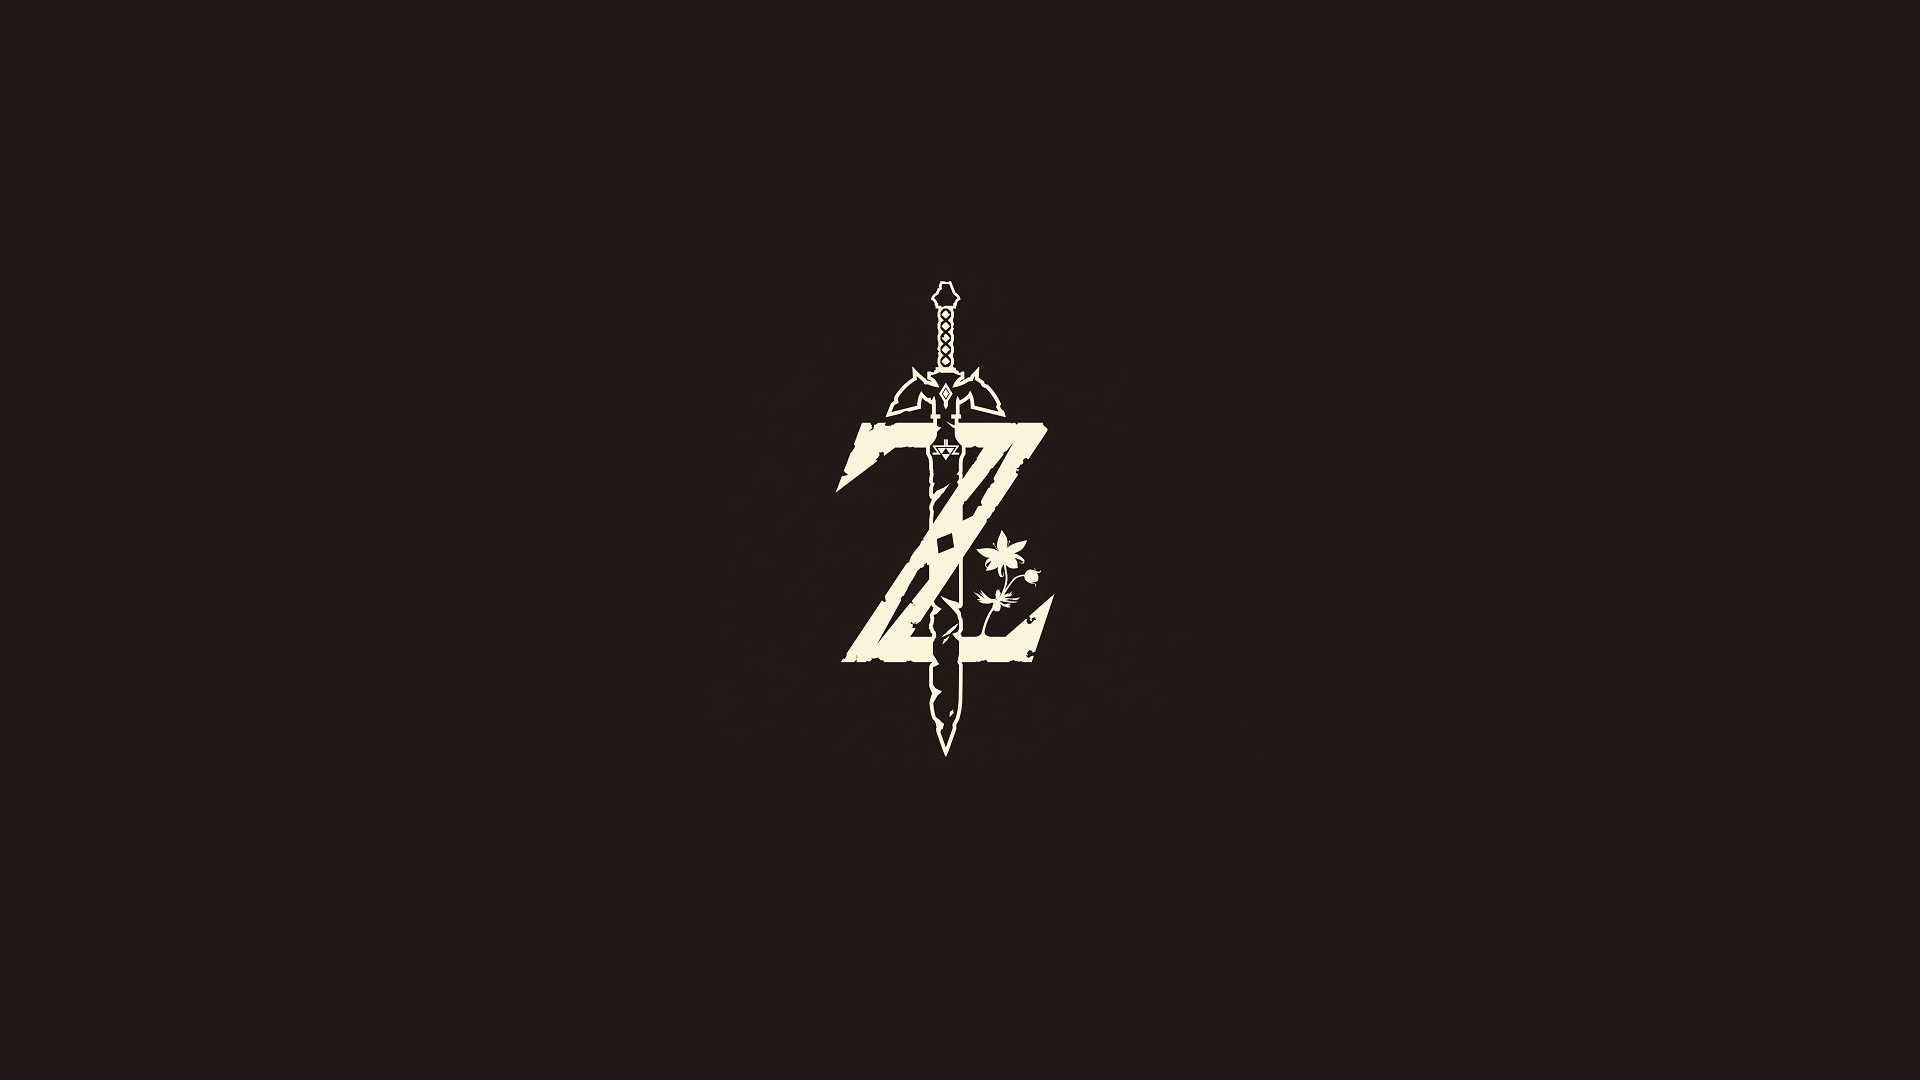 Legend Of Zelda Breath Of The Wild Logo Hq Backgrounds Hd Wallpapers Gallery Gallsource Com